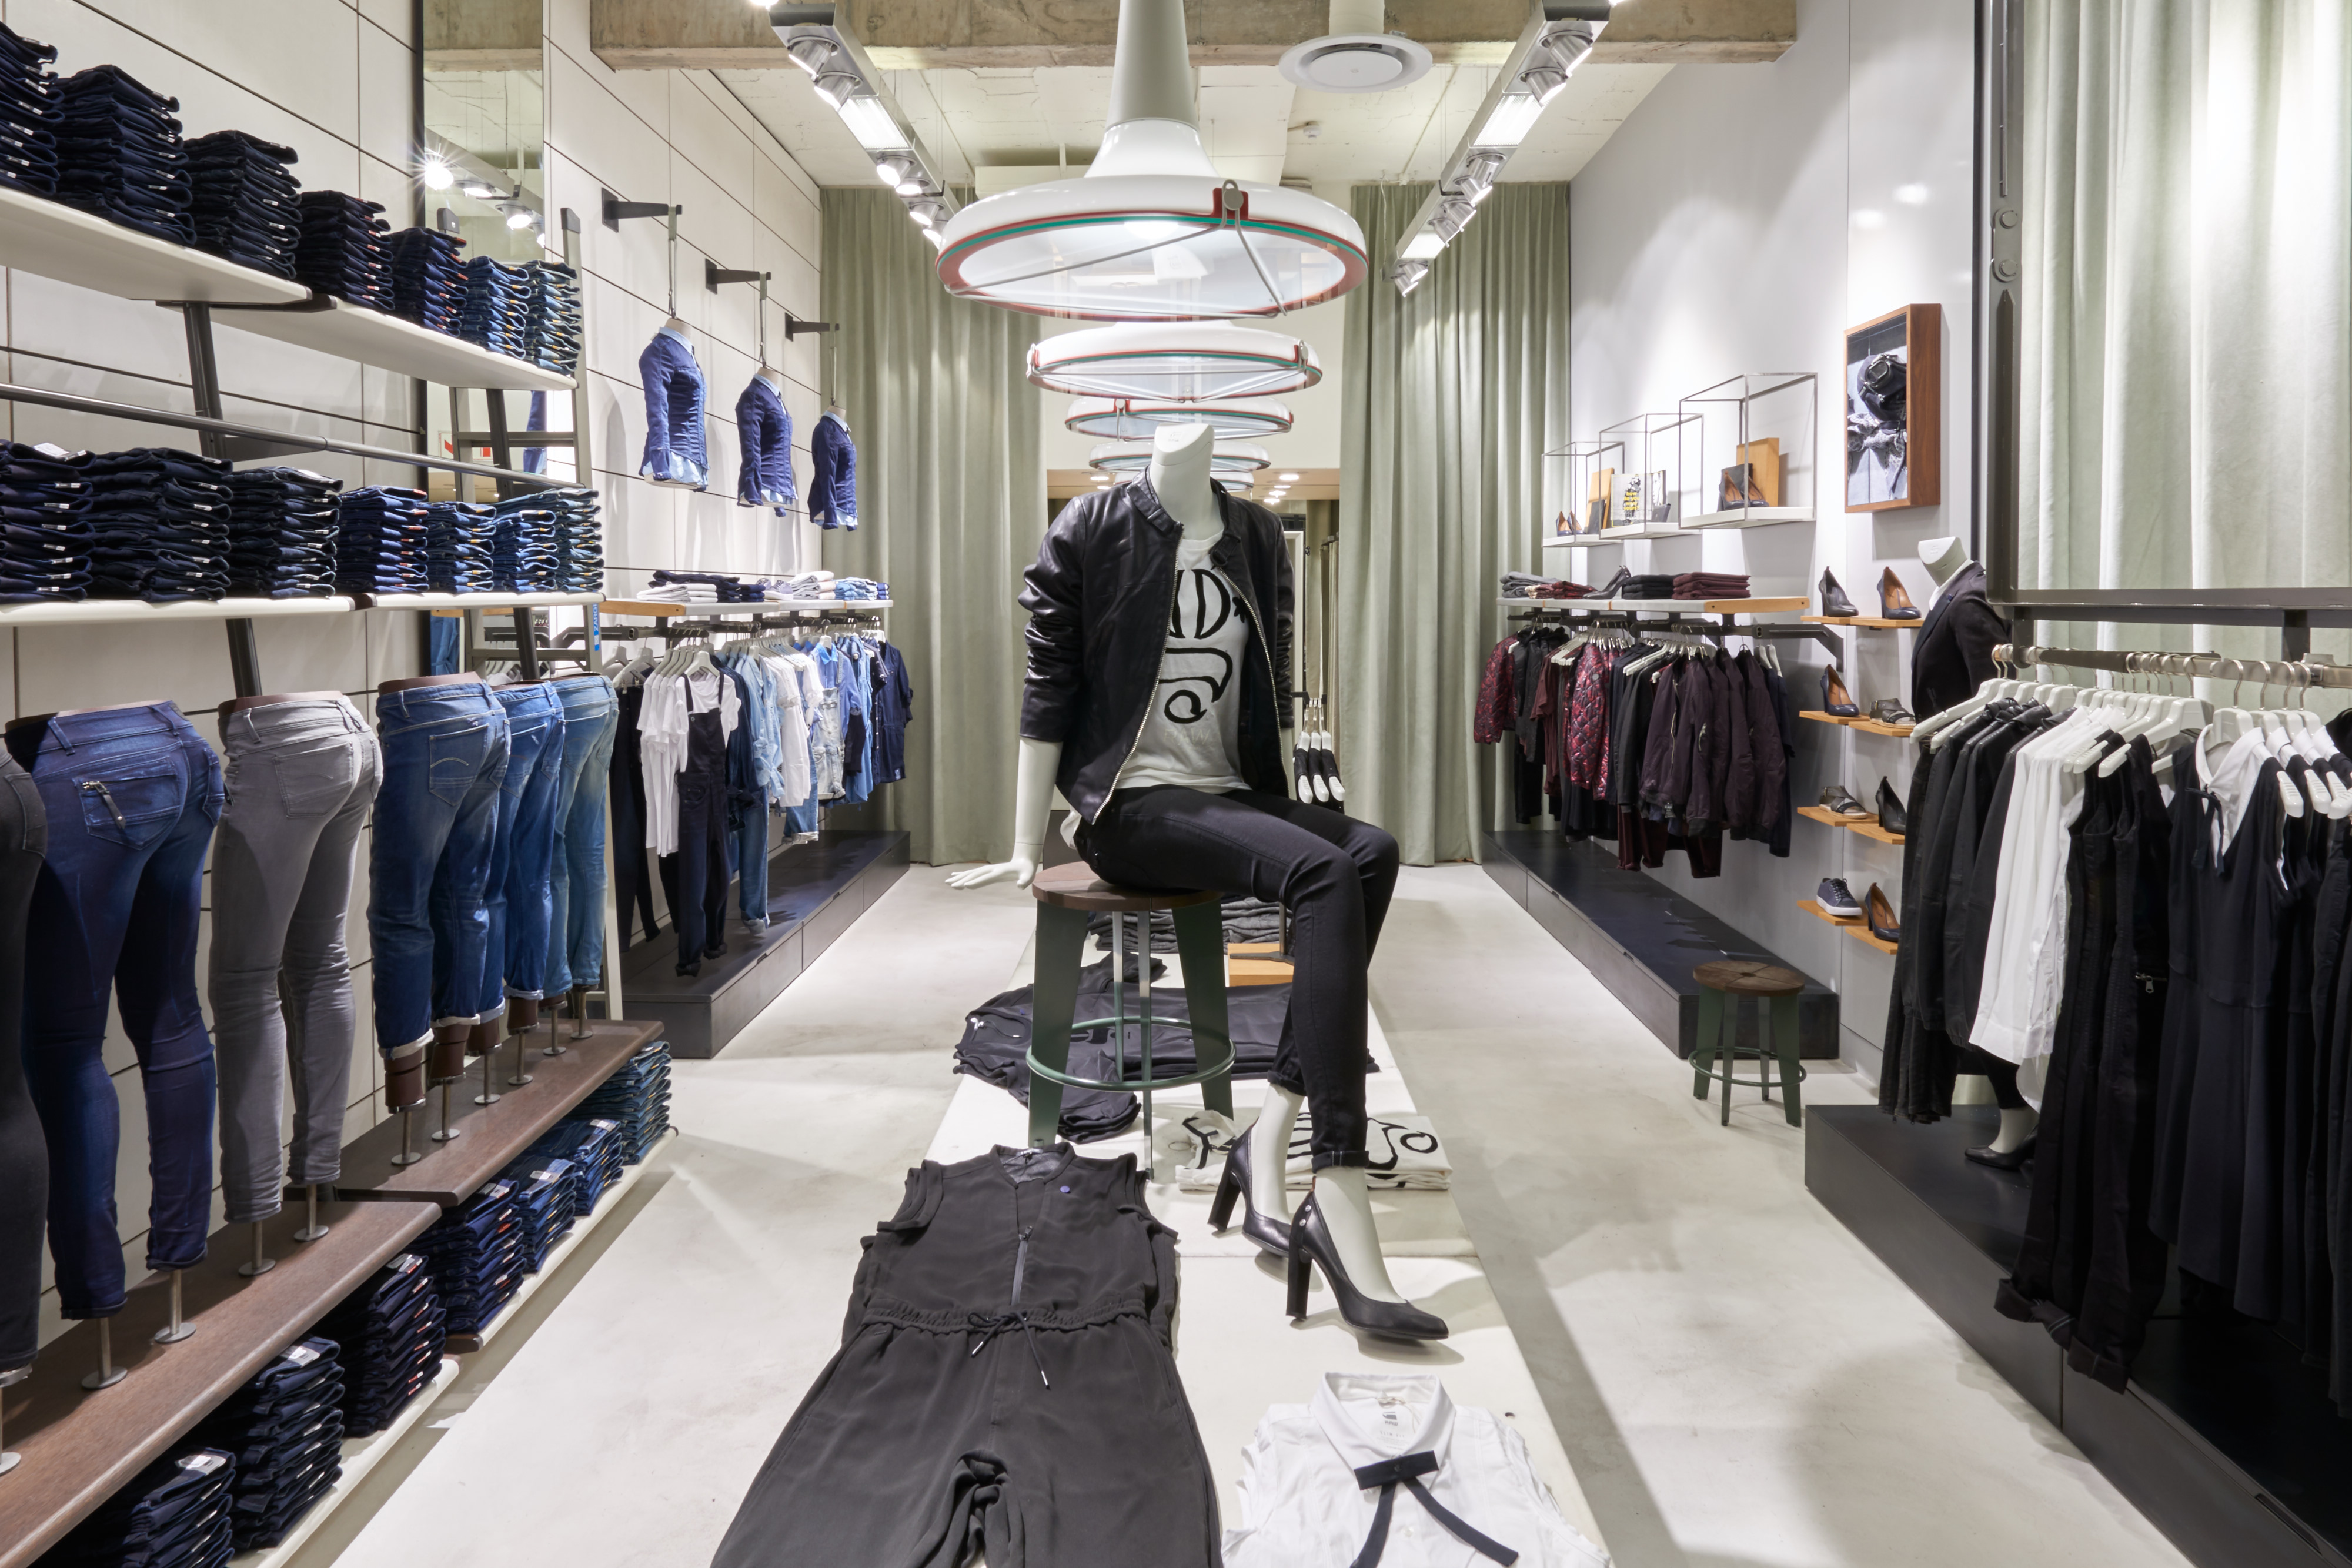 G and g clothing store